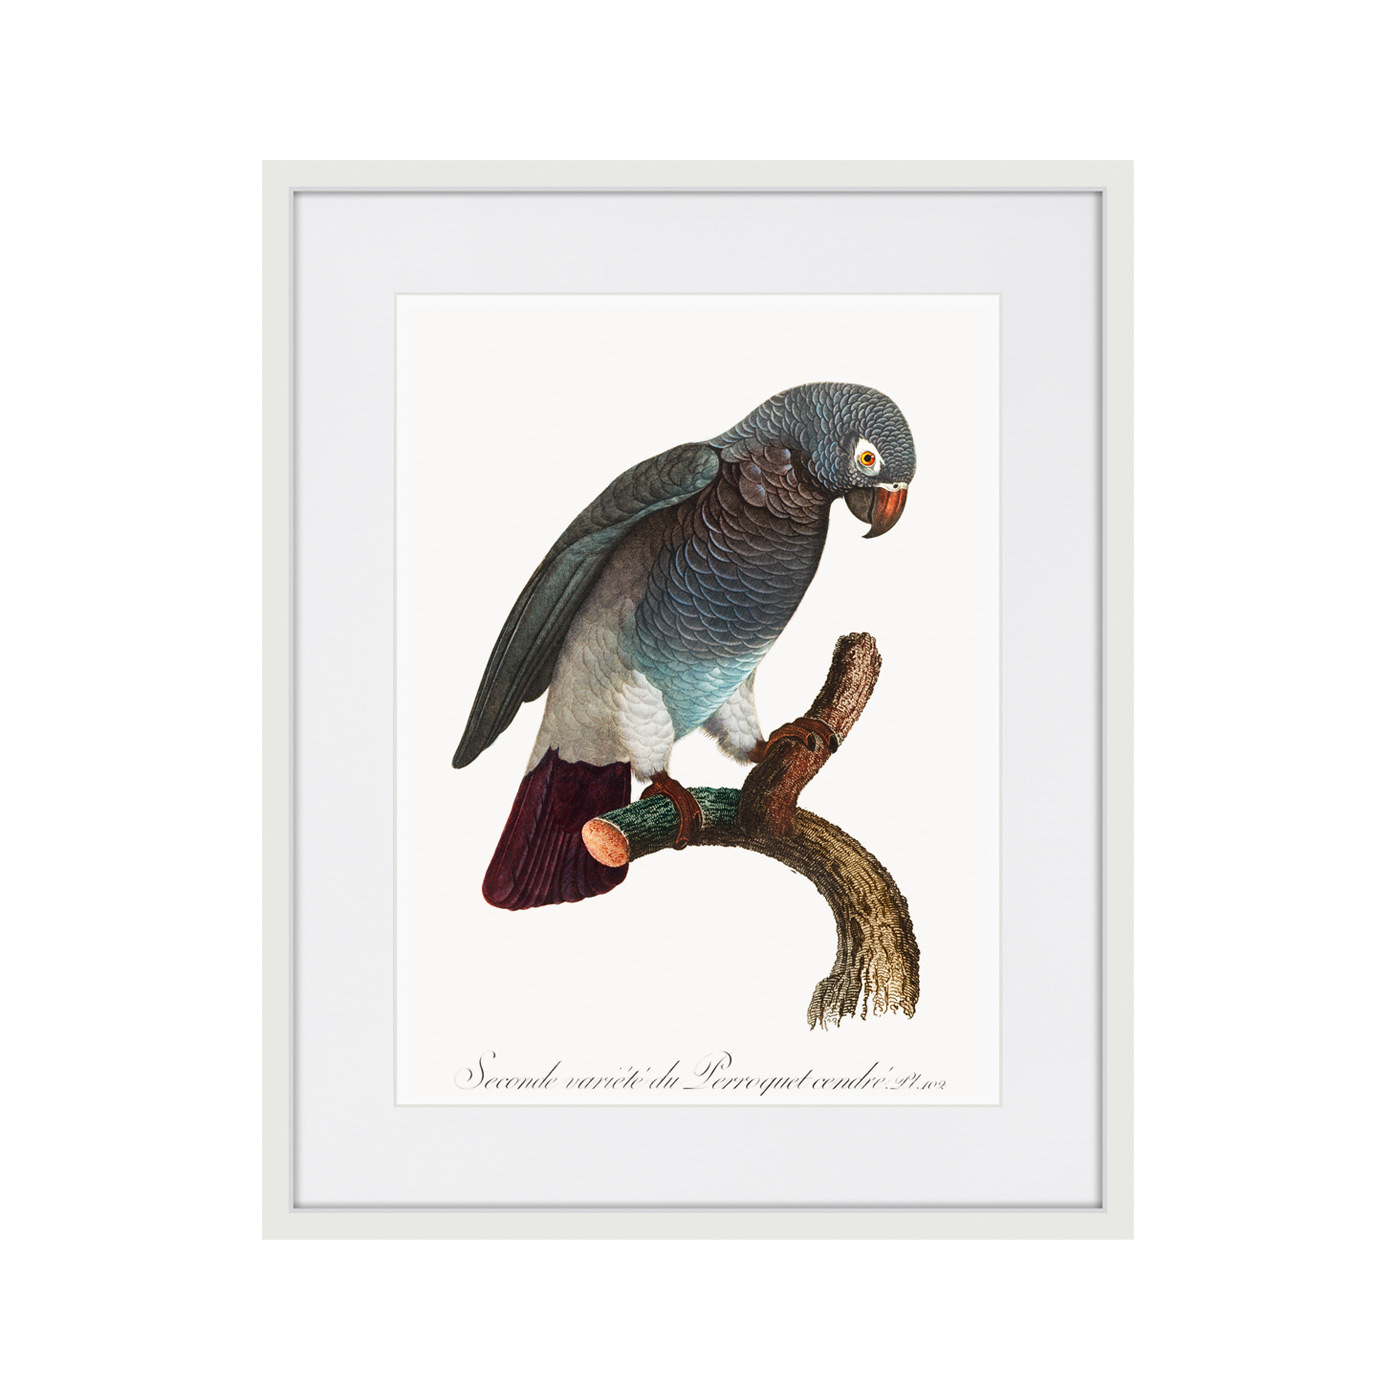 Beautiful parrots №6, 1872г.